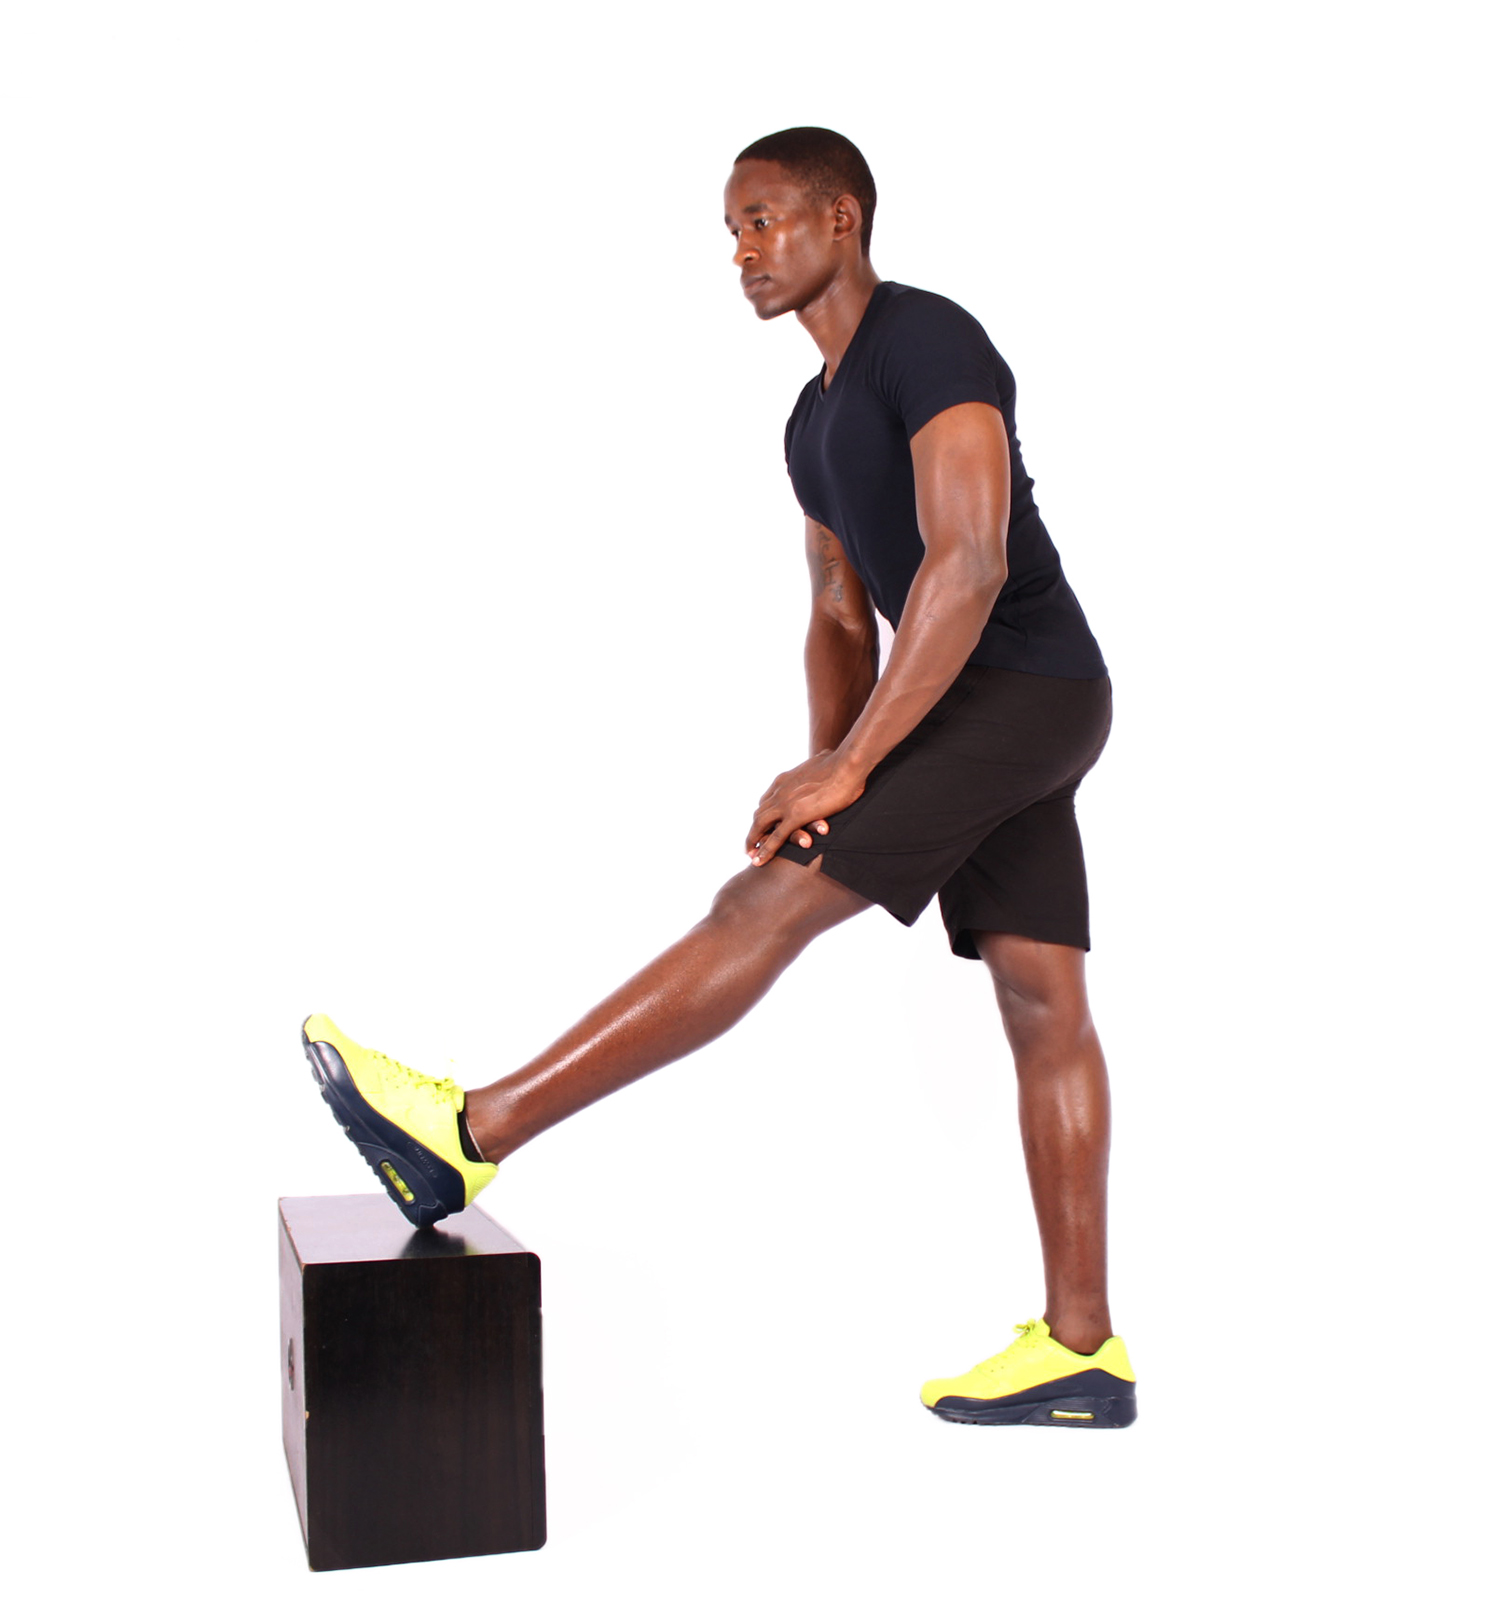 Fit man stretching leg muscles on step up box